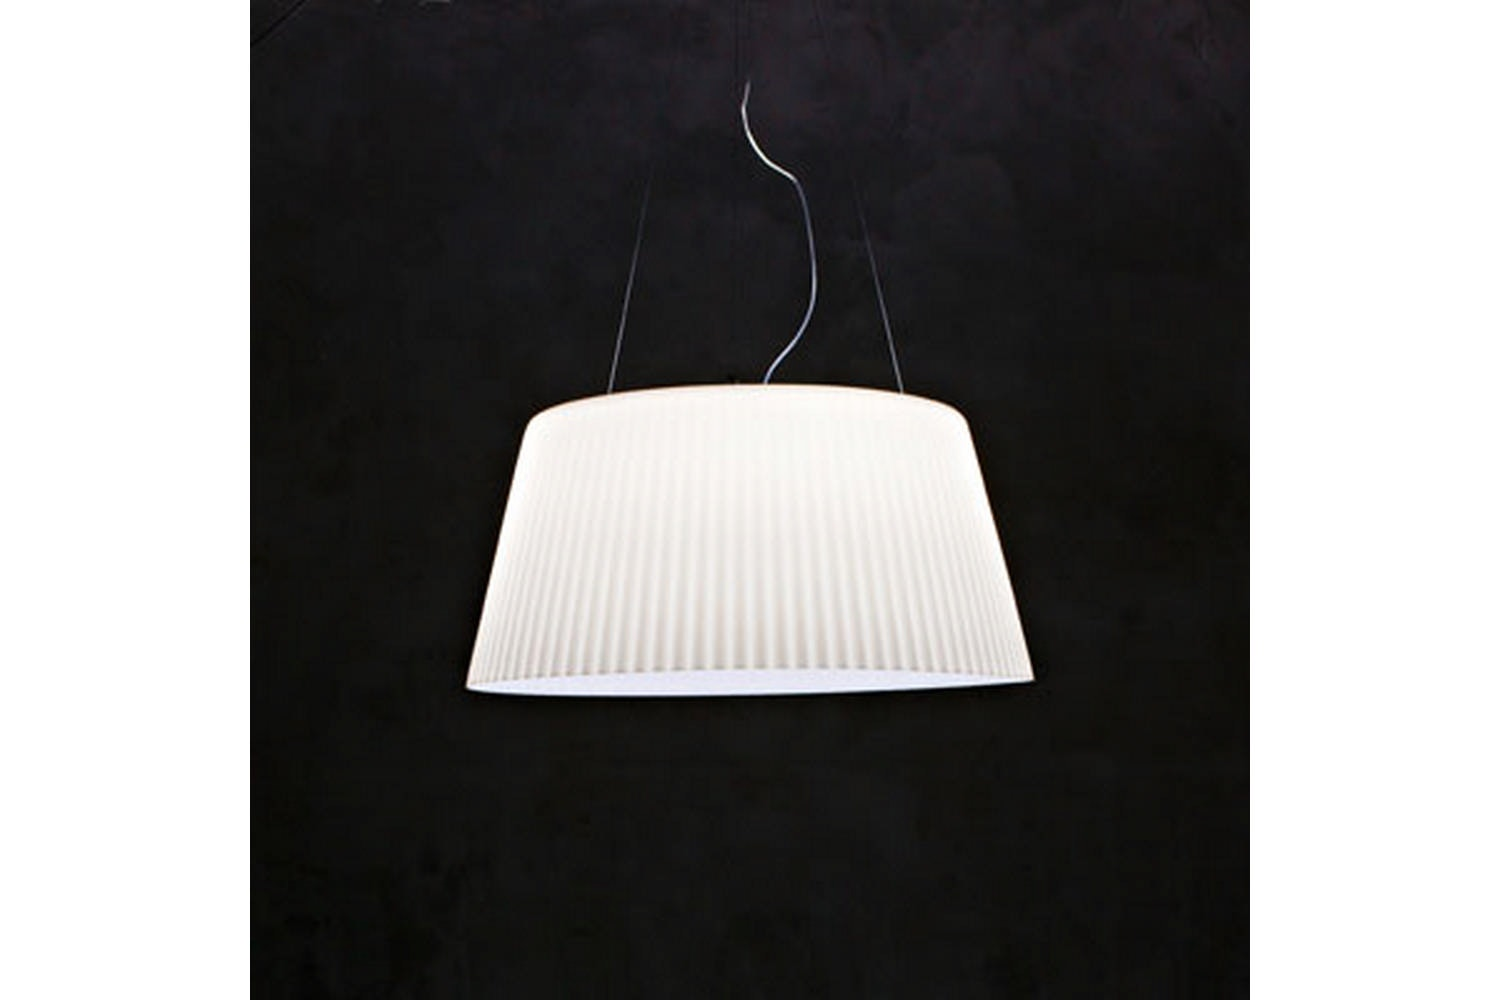 Lampa-Daria Suspension Lamp by Luisa Bocchietto for Serralunga